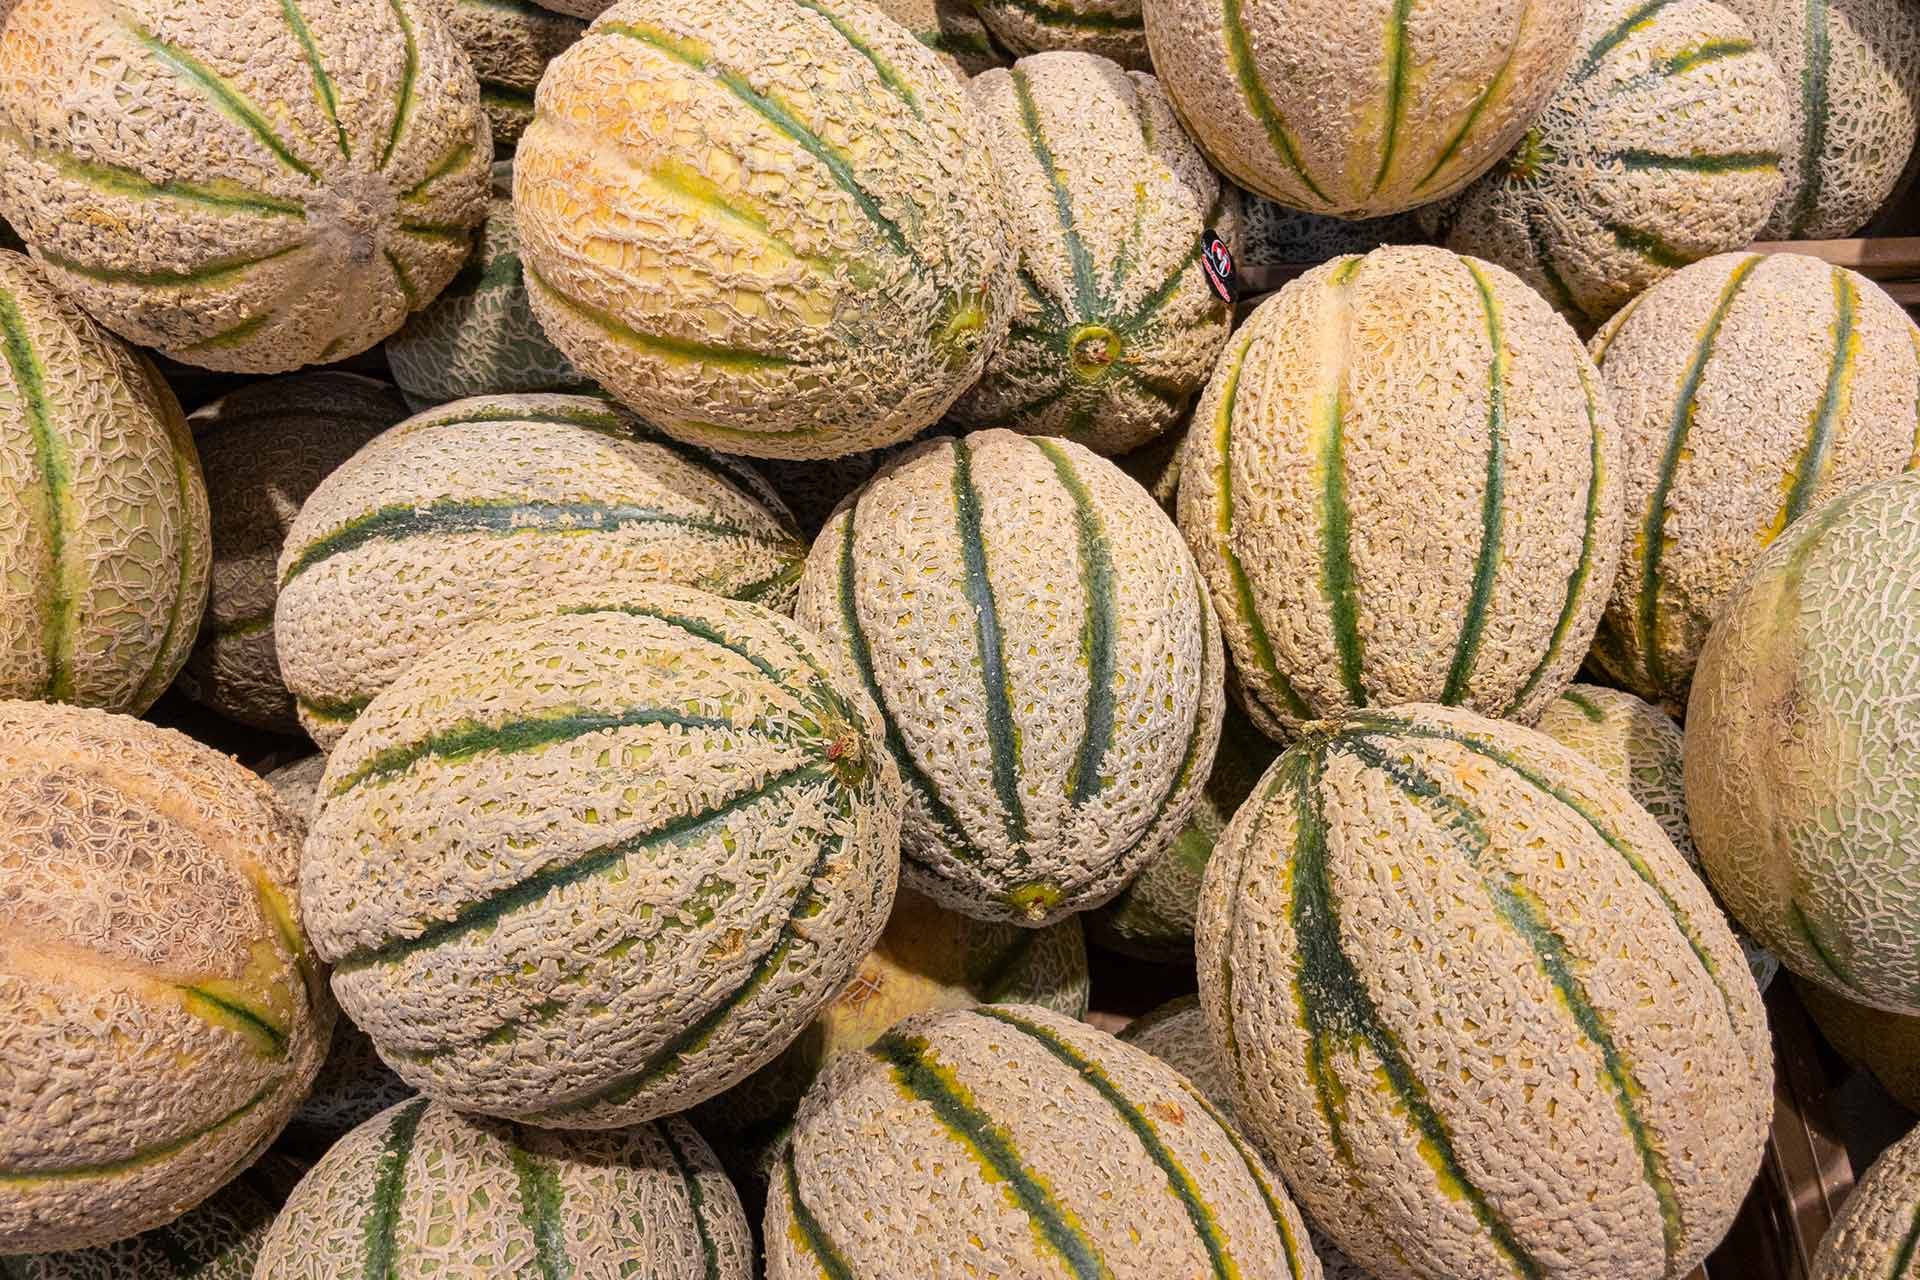 Cantalupes Melon